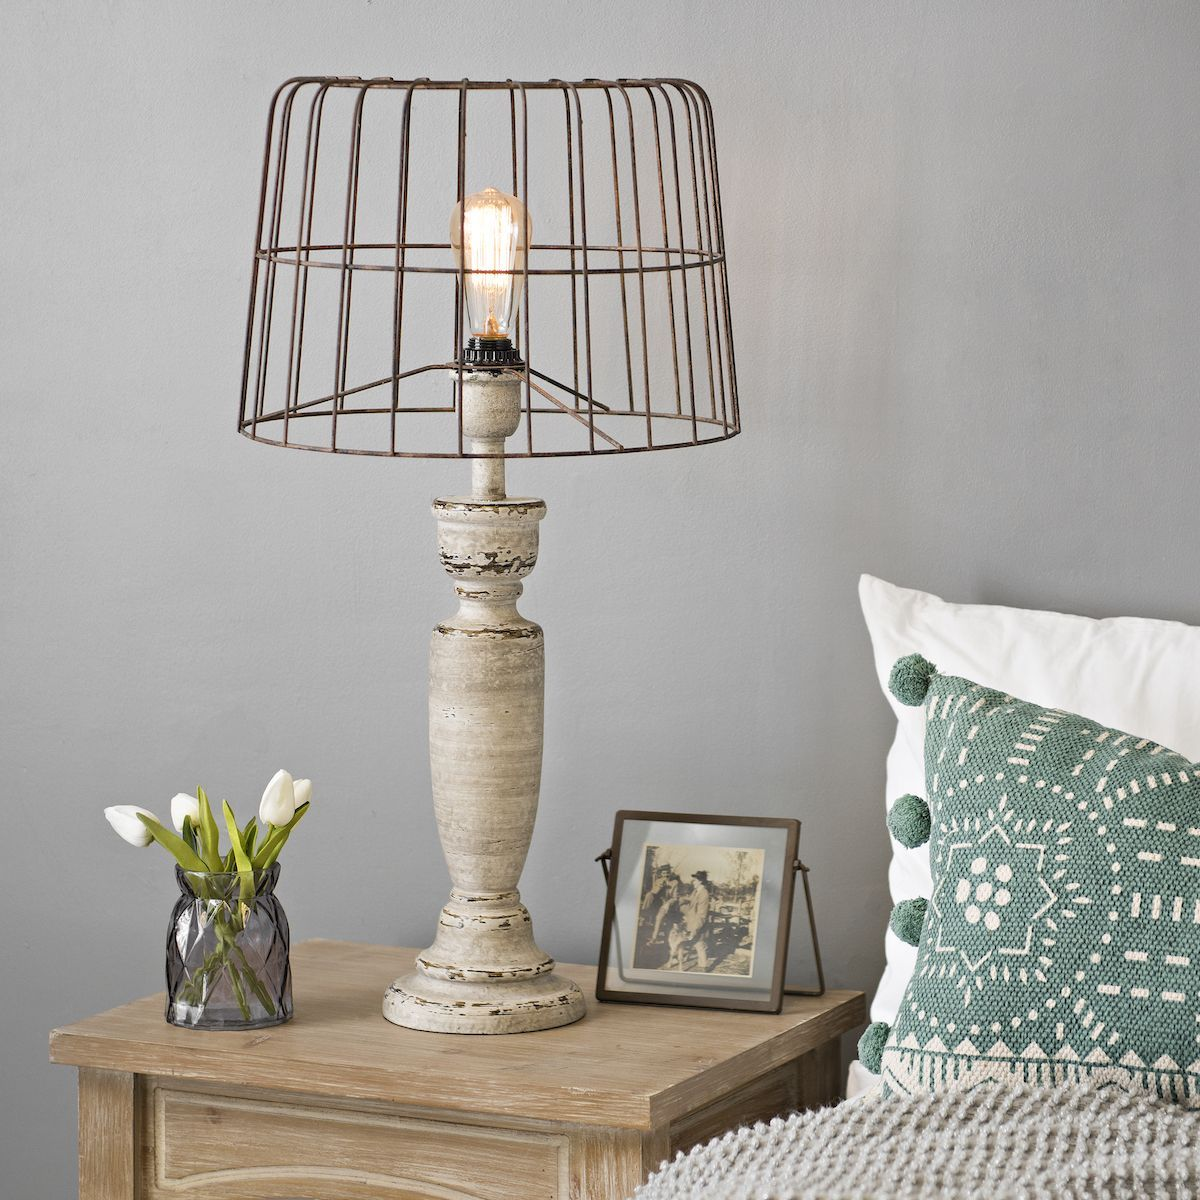 No Shade But This Lamp Is The Best Farmhouse Table Lamps Table Lamps Living Room Lamps Living Room